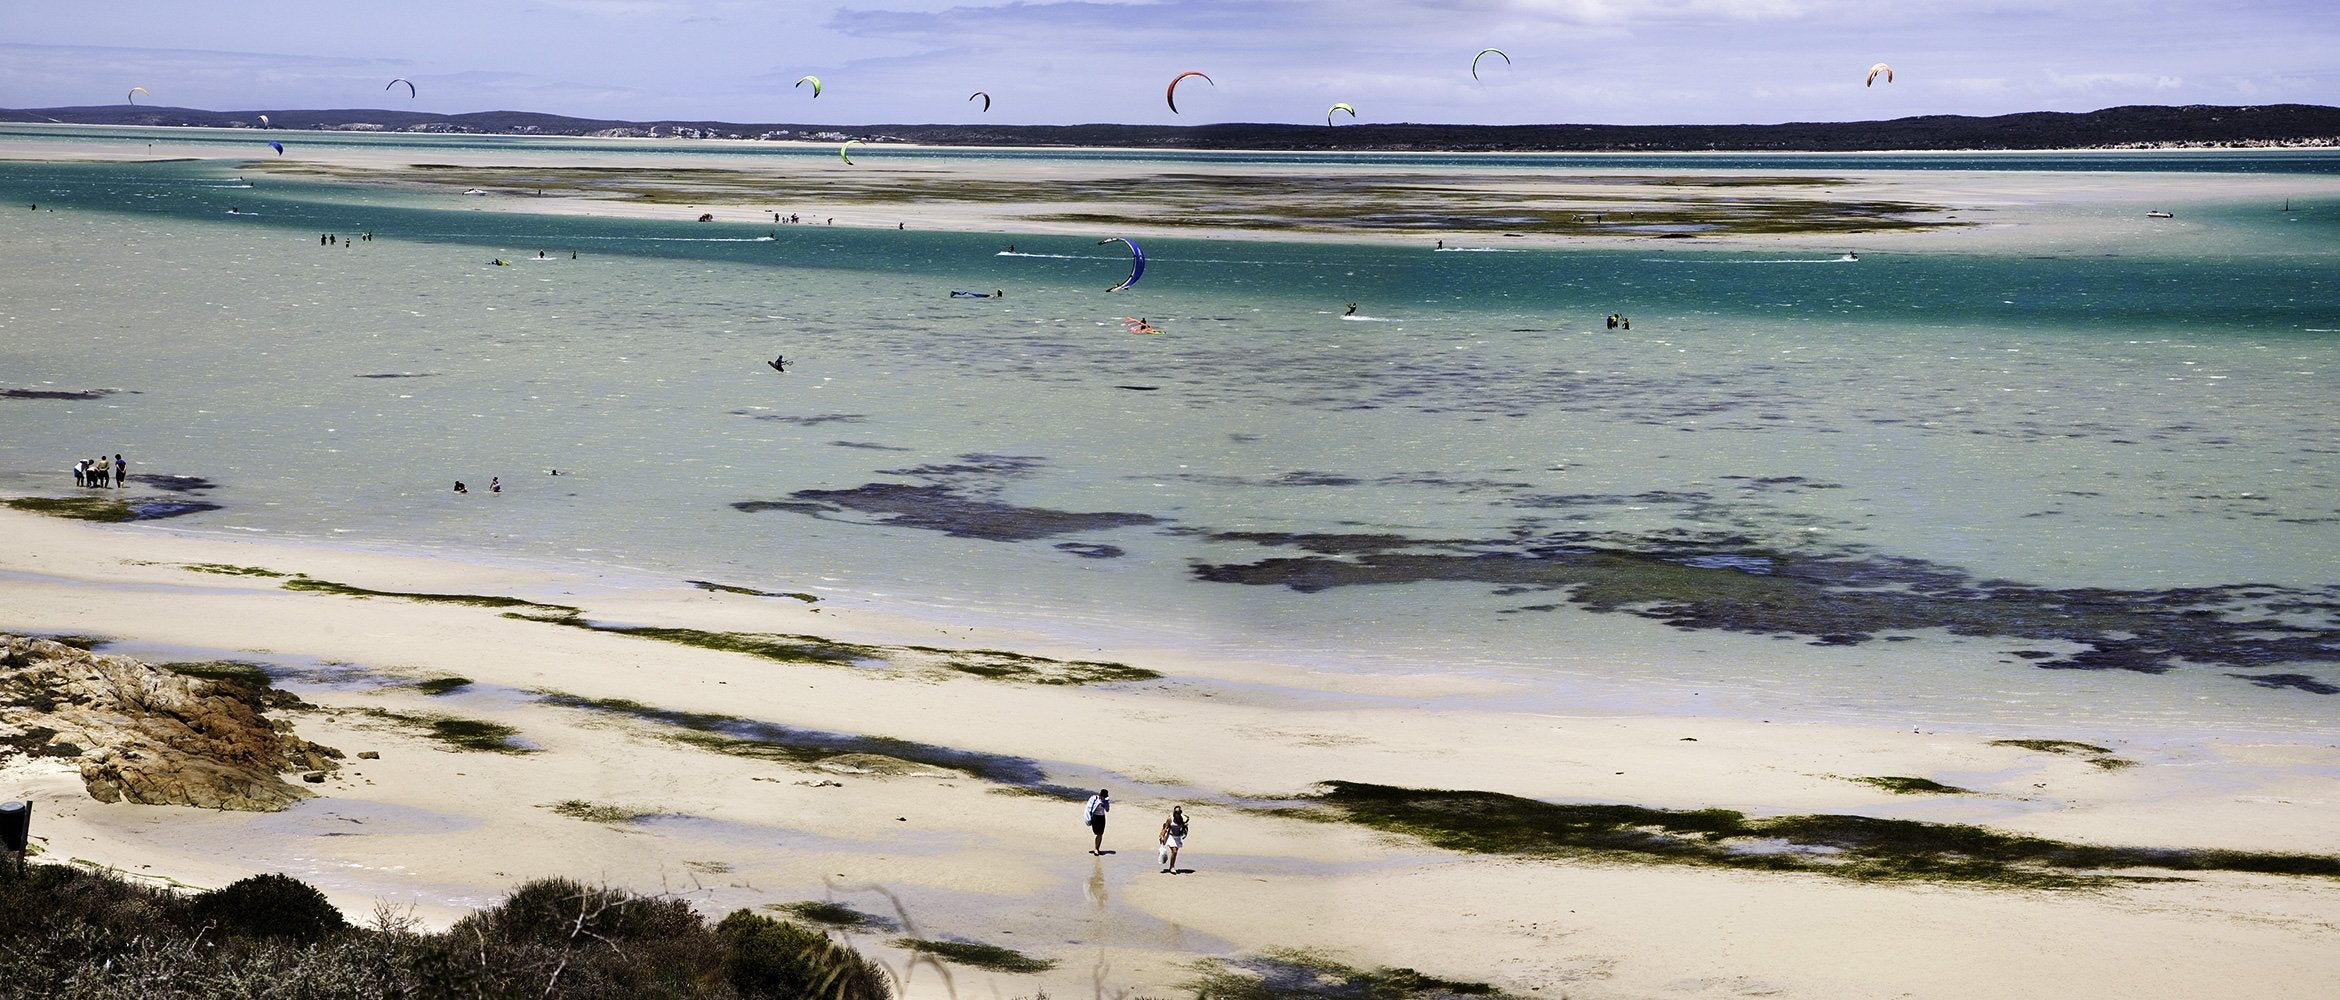 Langebaan: South Africa's Kitesurf Haven | WildBounds